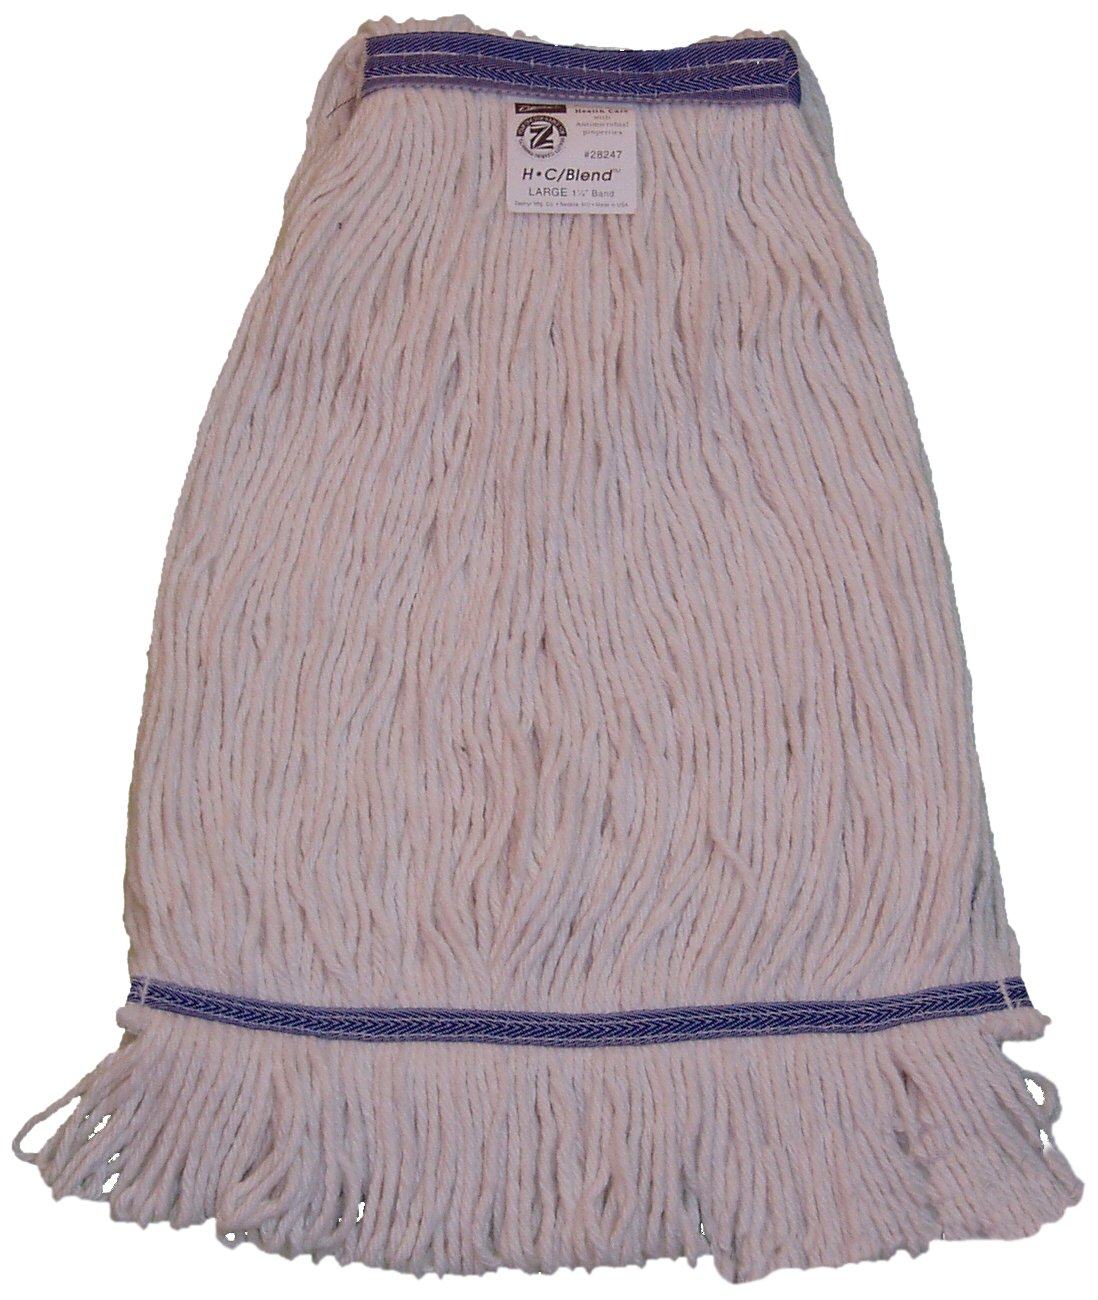 Zephyr 28248 HC/Blend Natural 4-Ply Yarn X-large Health Care Loop Mop Head with 1-1/4'' Narrow Headband (Pack of 12)